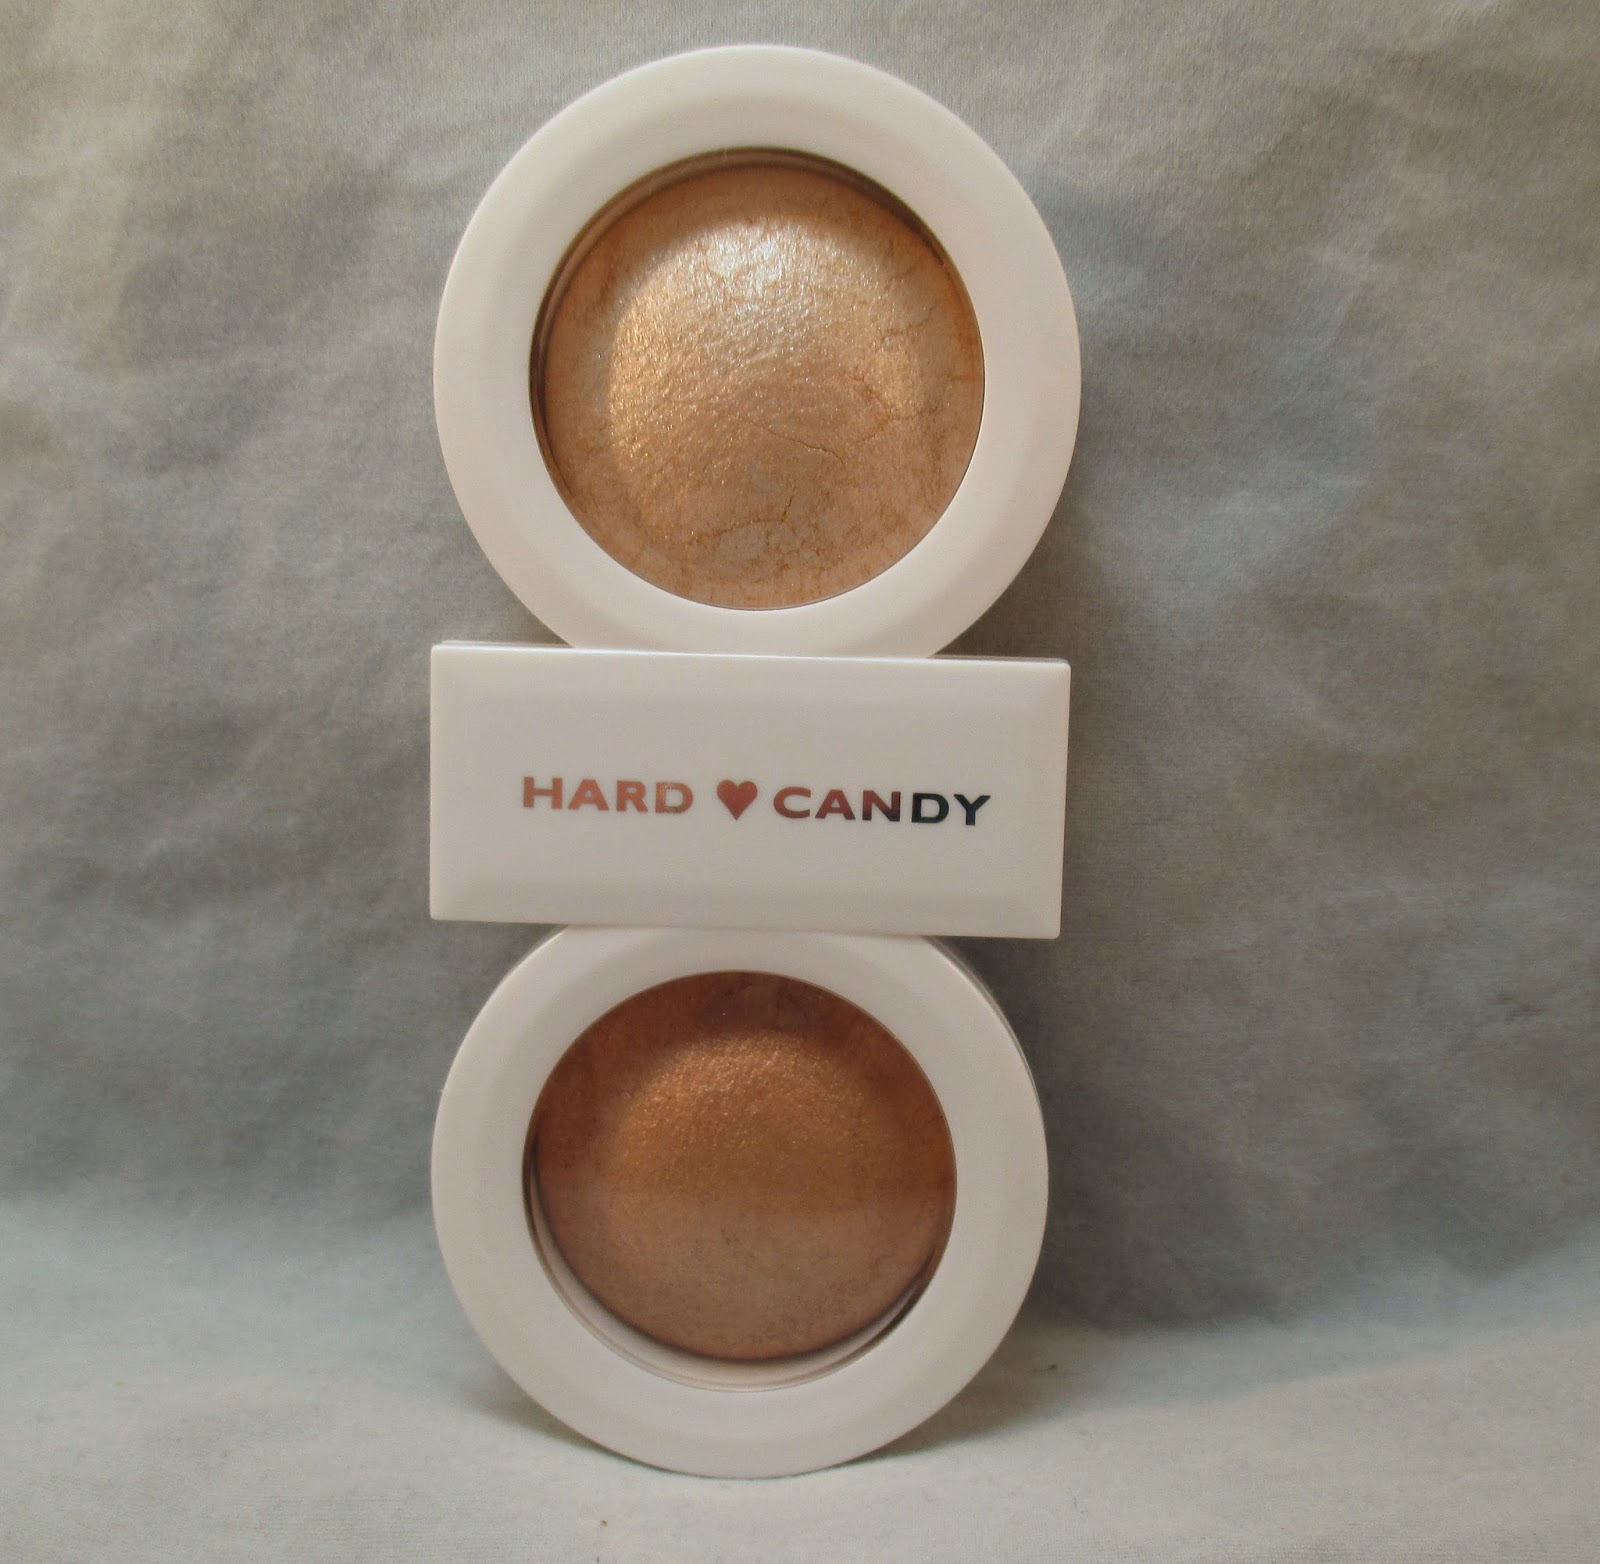 Illuminating Baked Blush Duo by Hard Candy #7